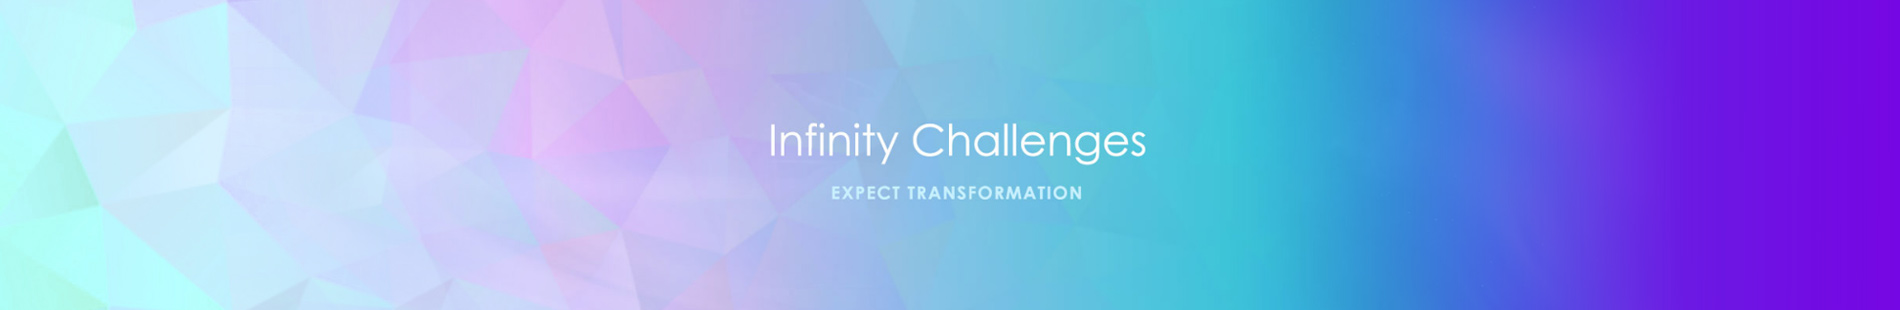 Infinity Challenges